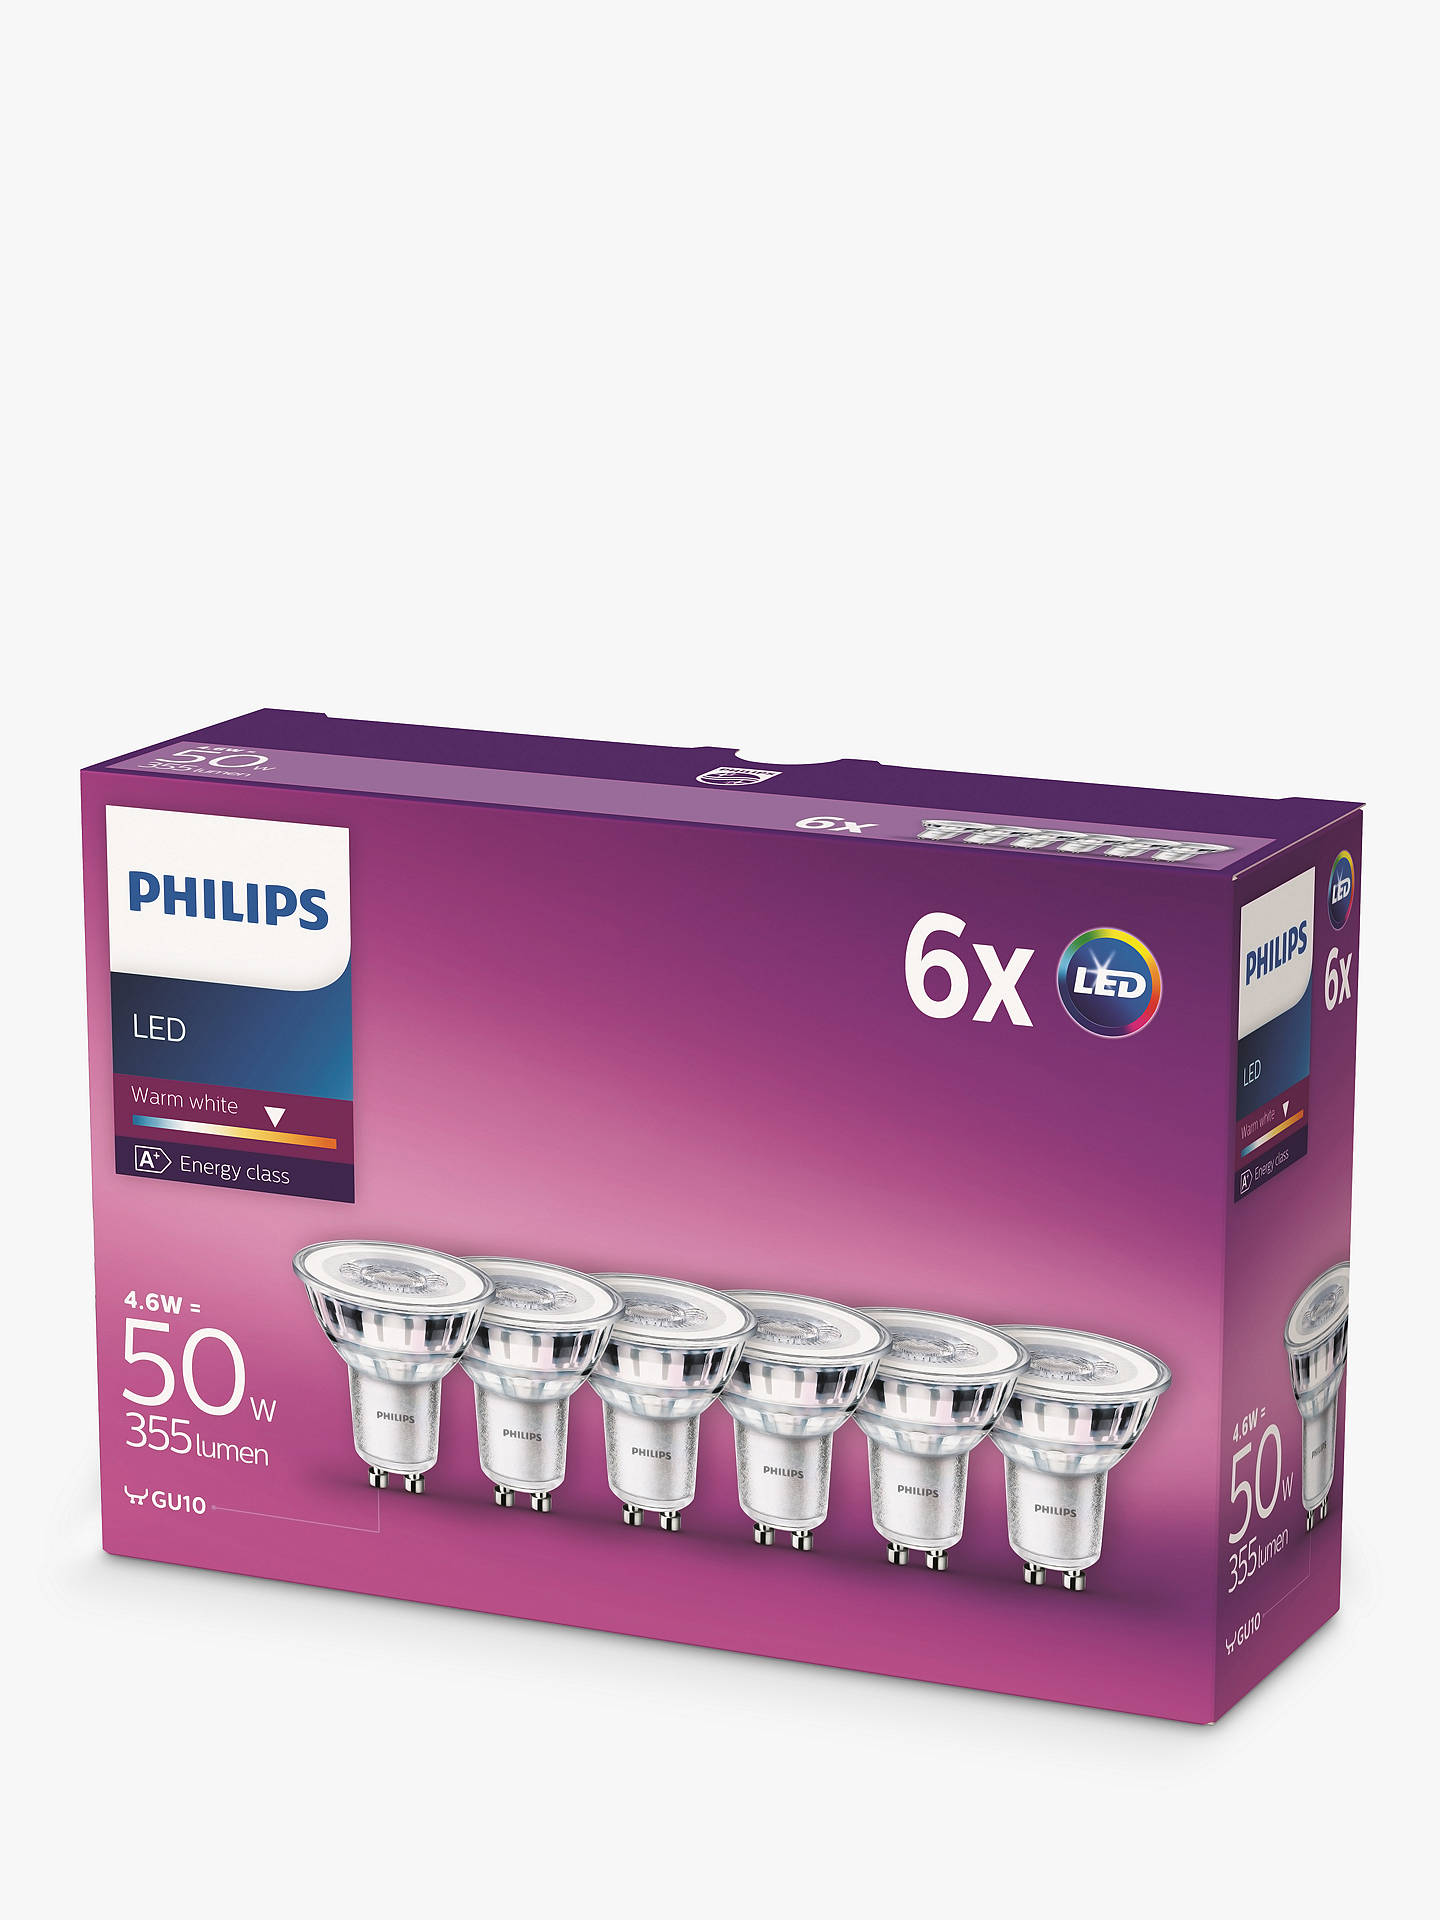 BuyPhilips 4.6W GU10 LED Bulb, Pack of 6 Online at johnlewis.com